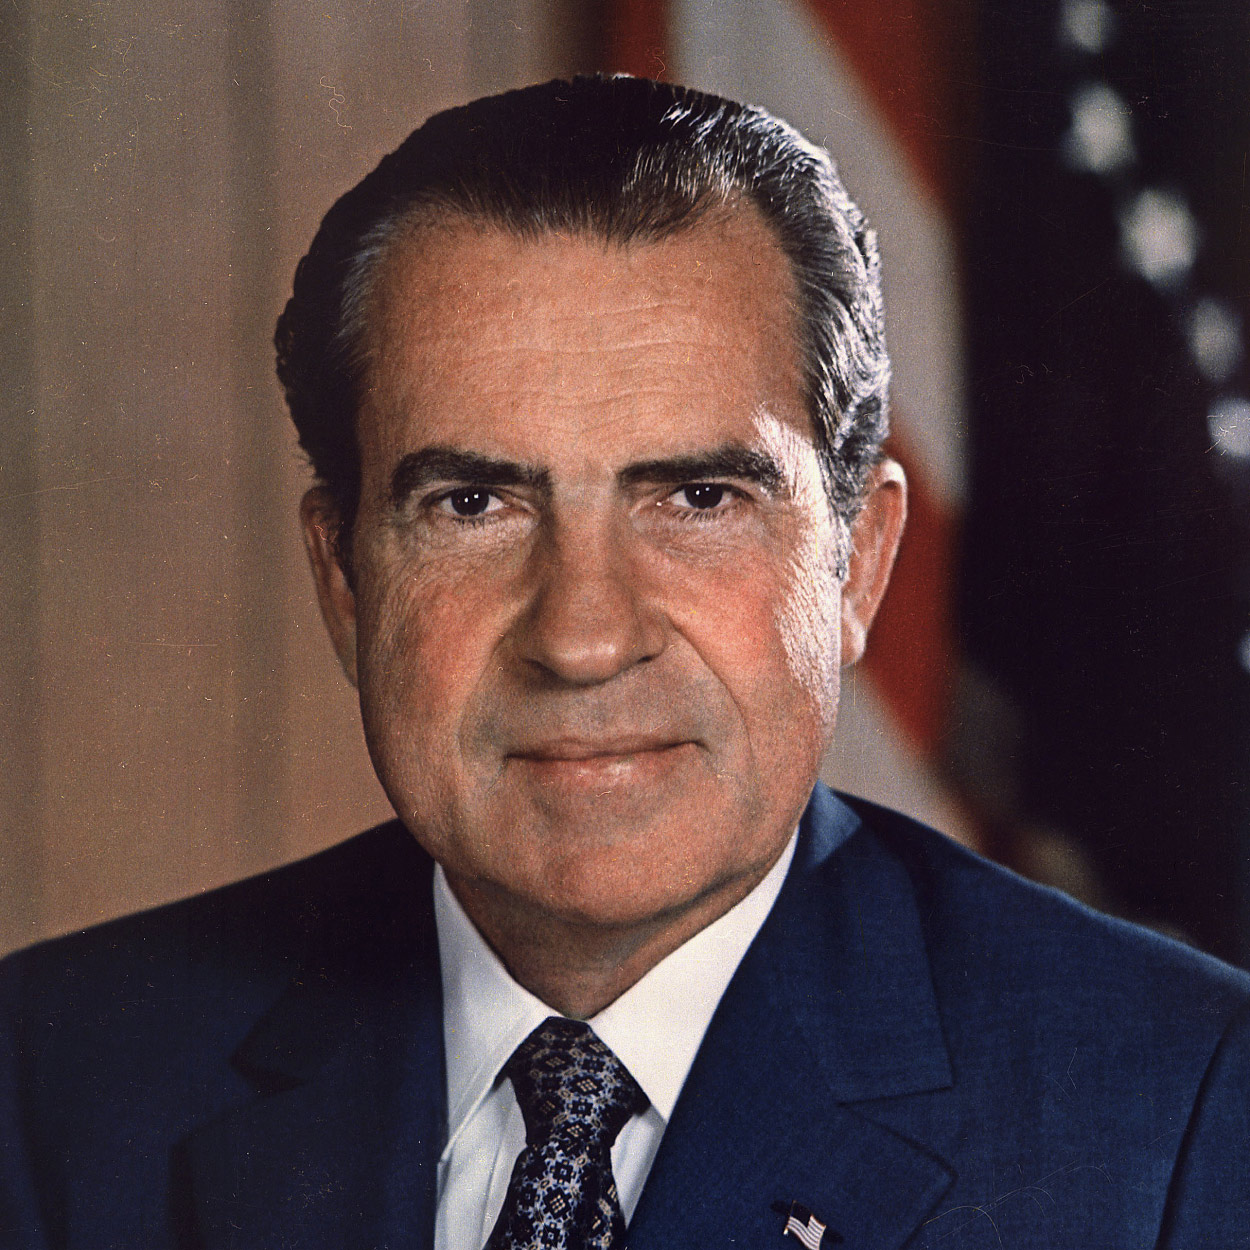 Portrait of Richard M. Nixon, the 37th President of the United States